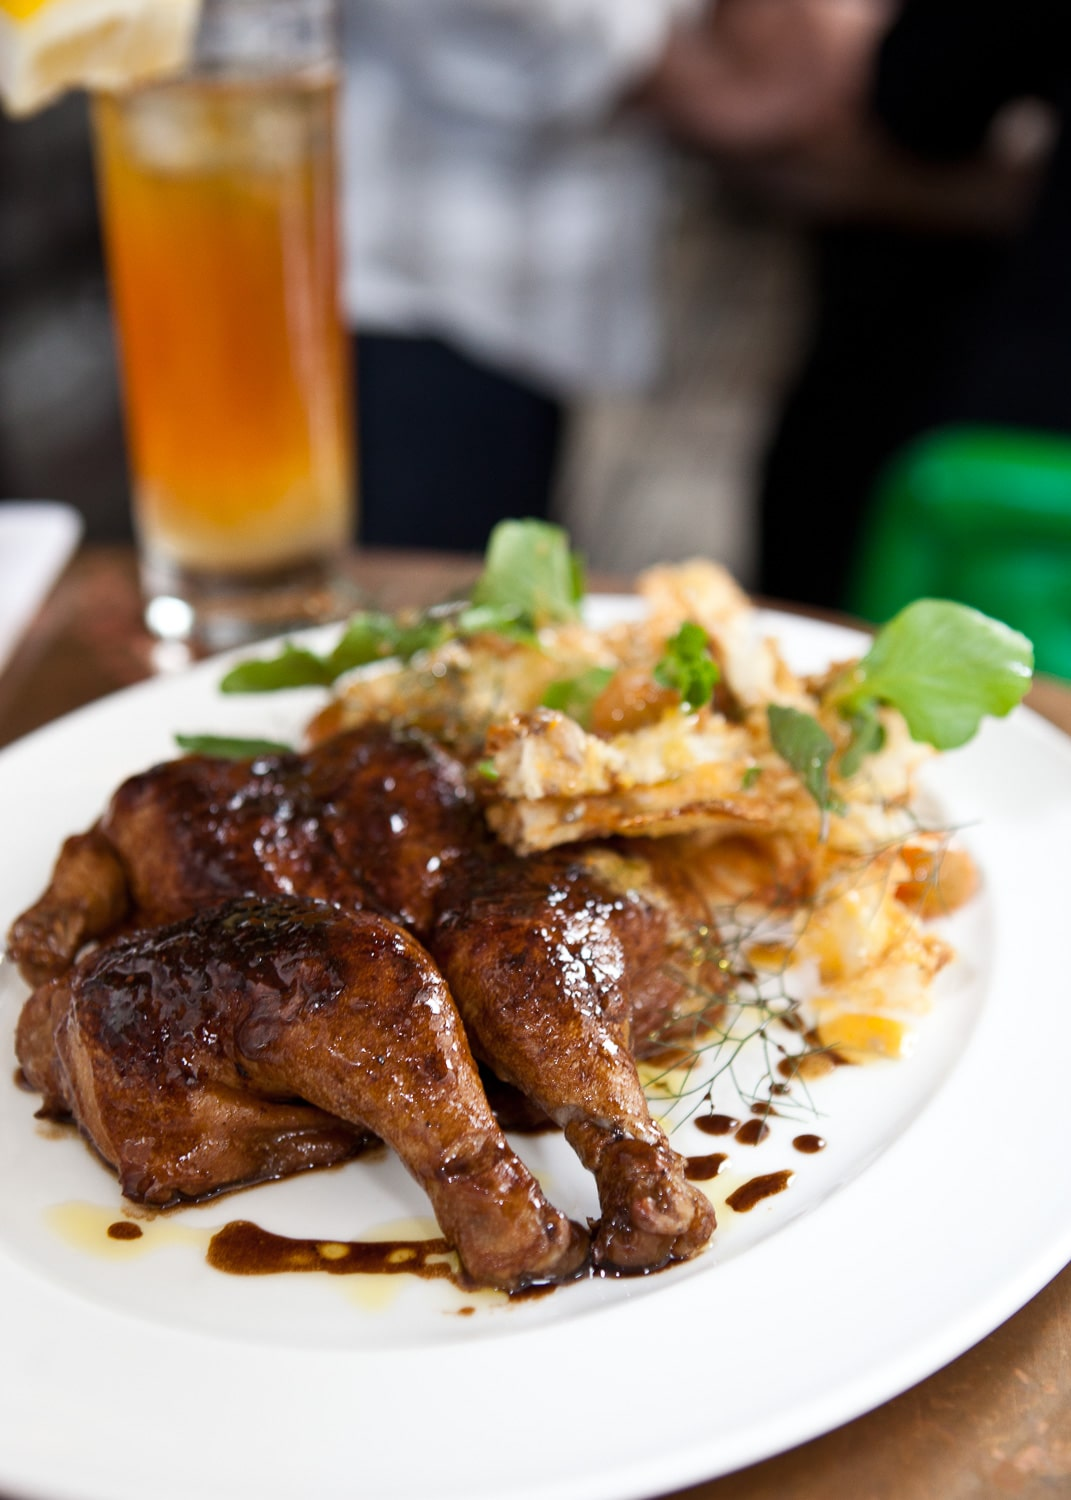 This food photo of a roasted cornish hen is served on a white plate with potato chips and a cocktail in the background.